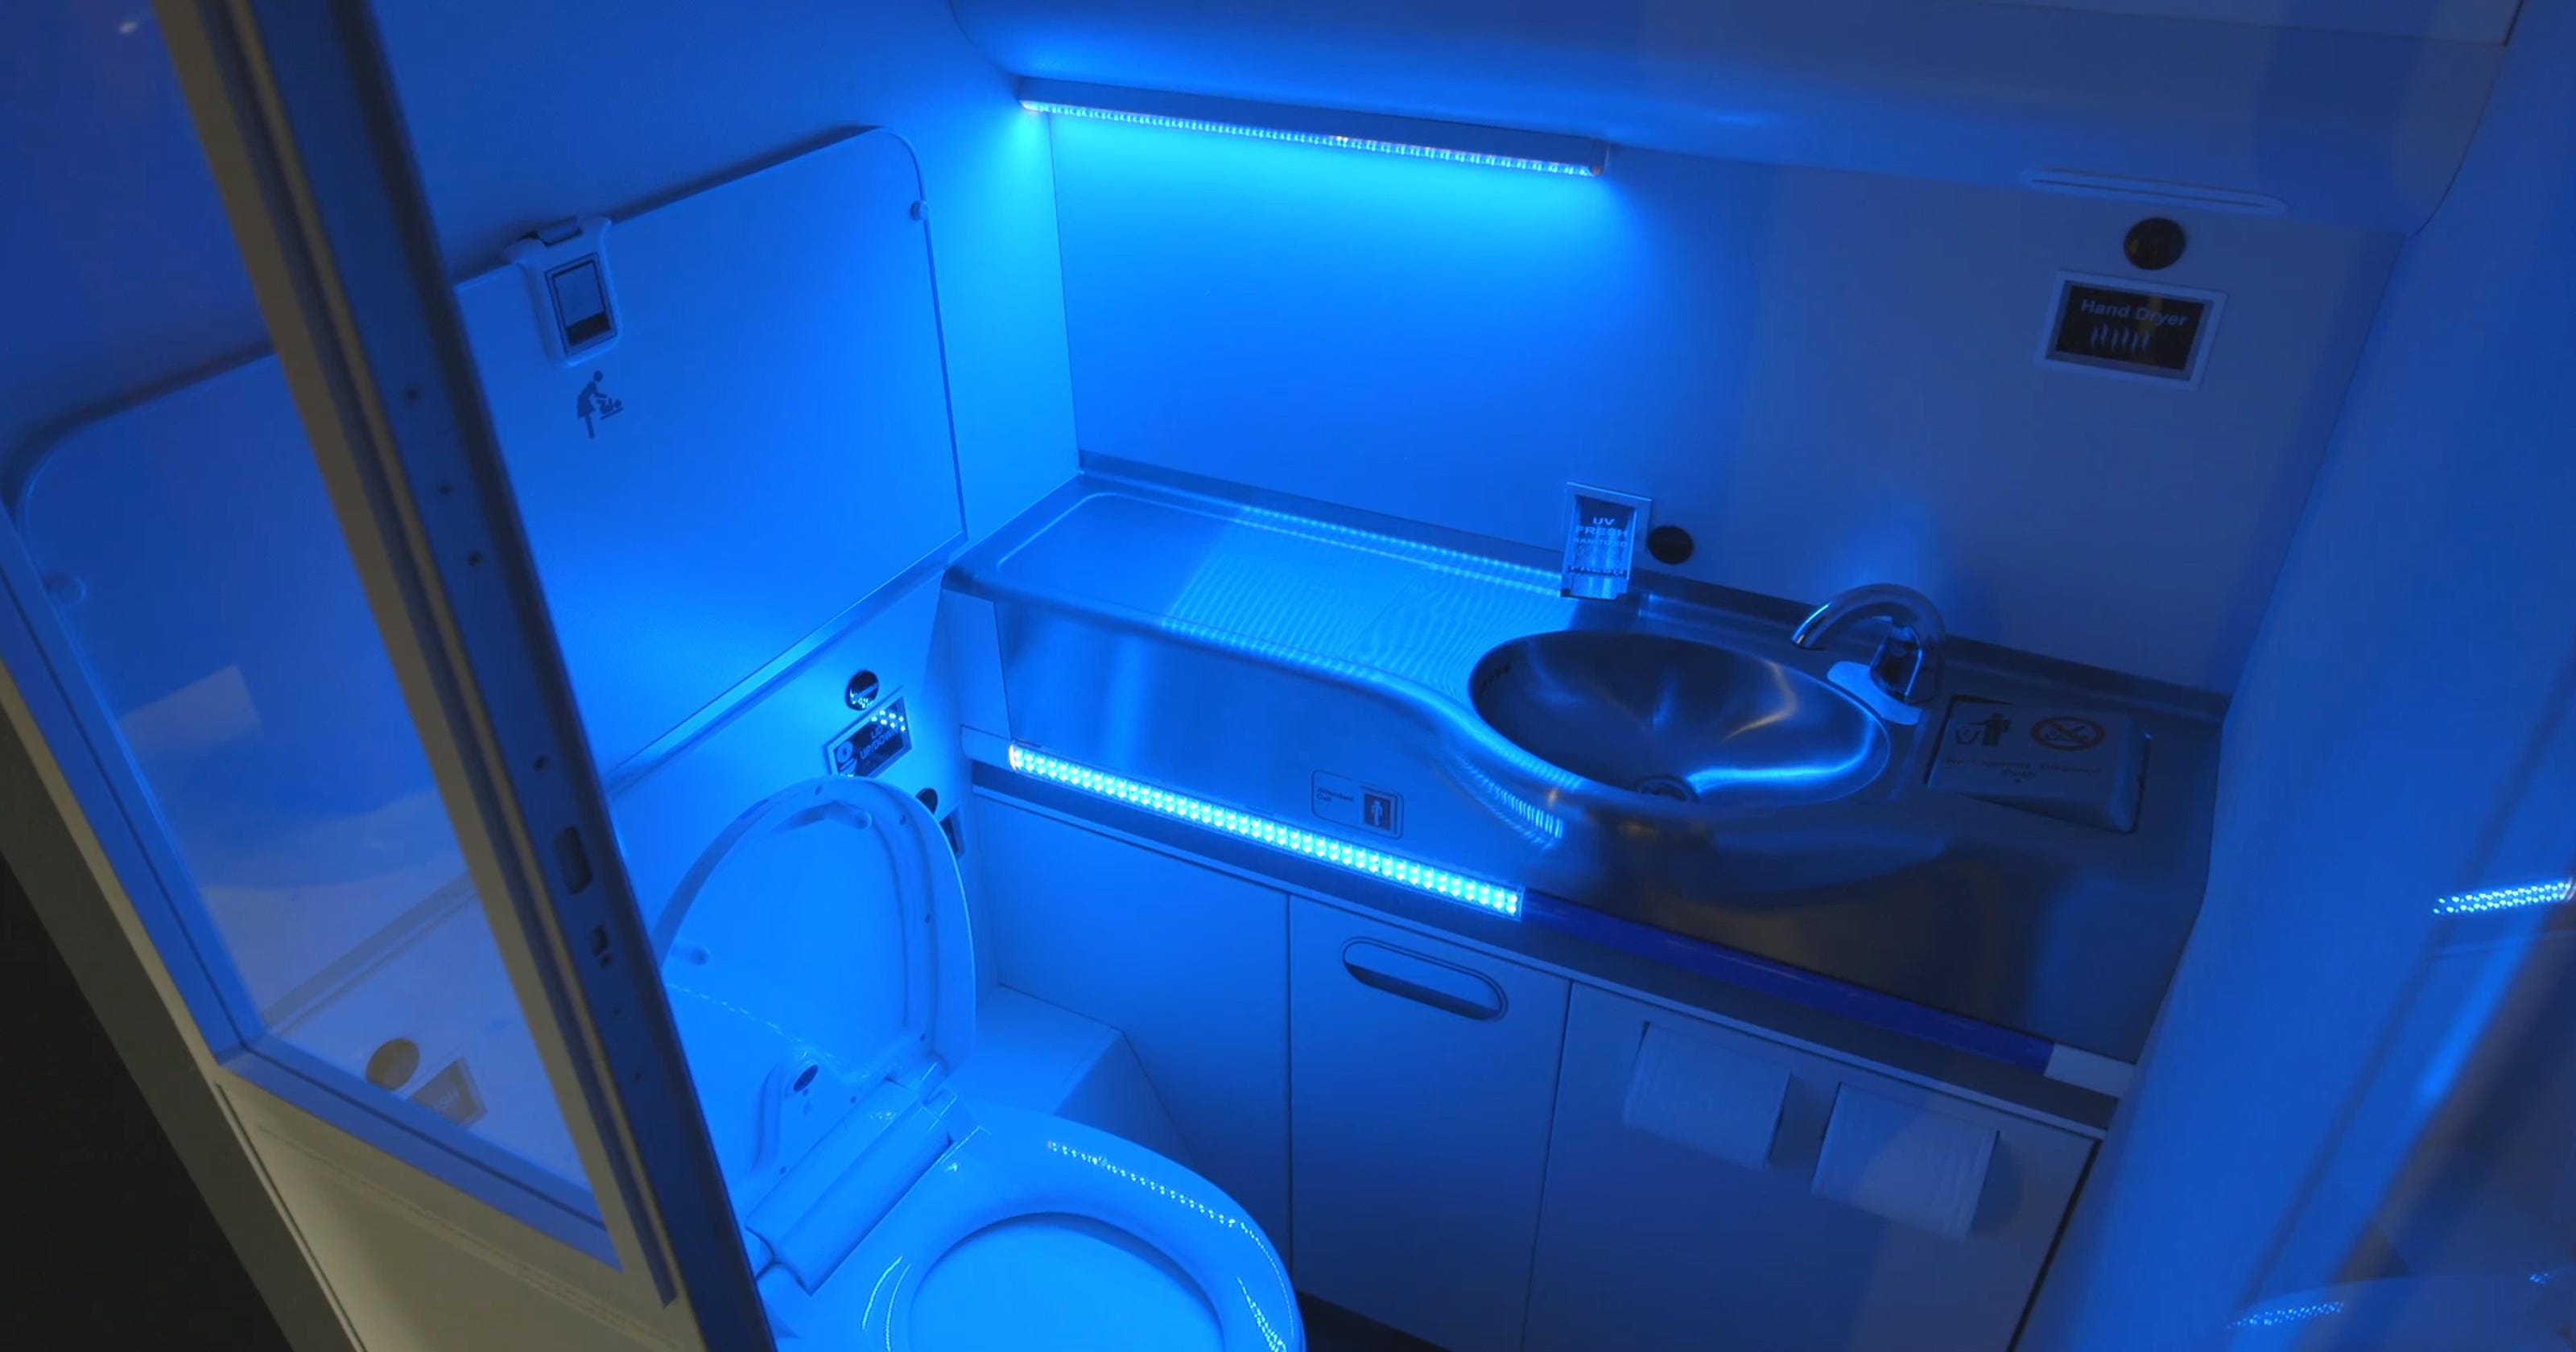 Cleaner skies? Boeing designs self-sterilizing jet bathrooms